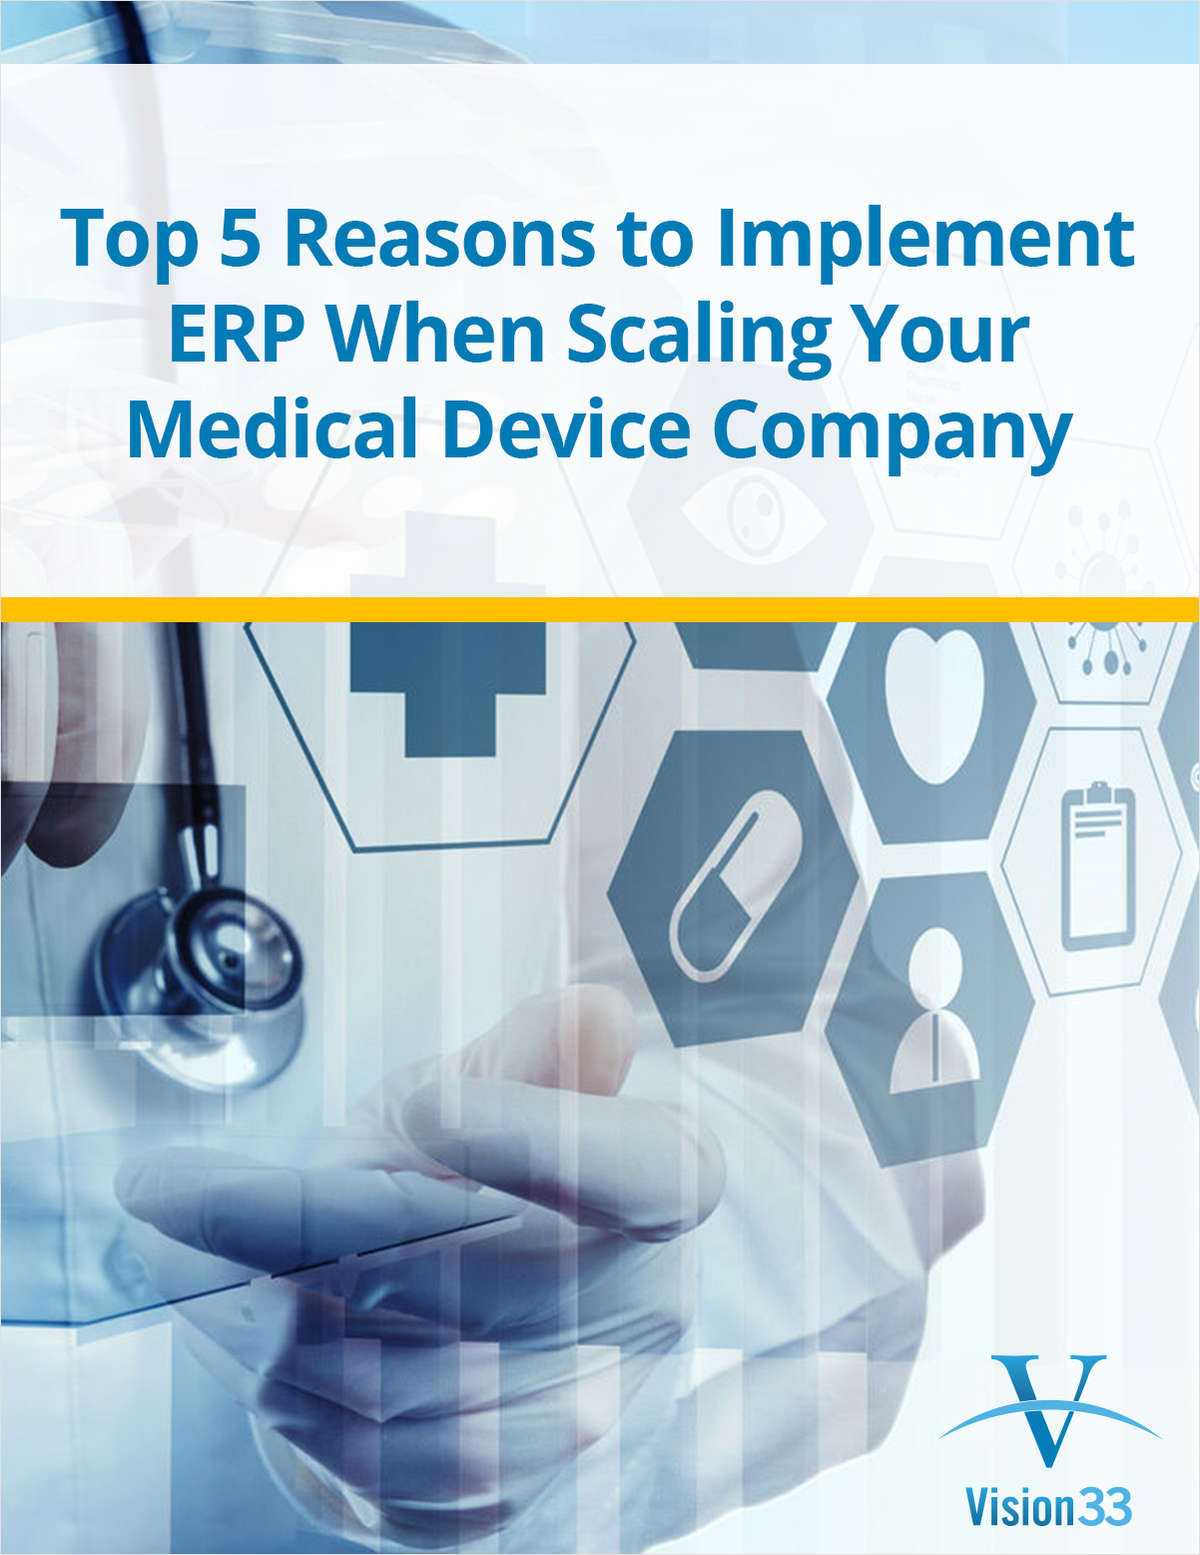 5 Reasons to implement ERP when scaling your medical device company